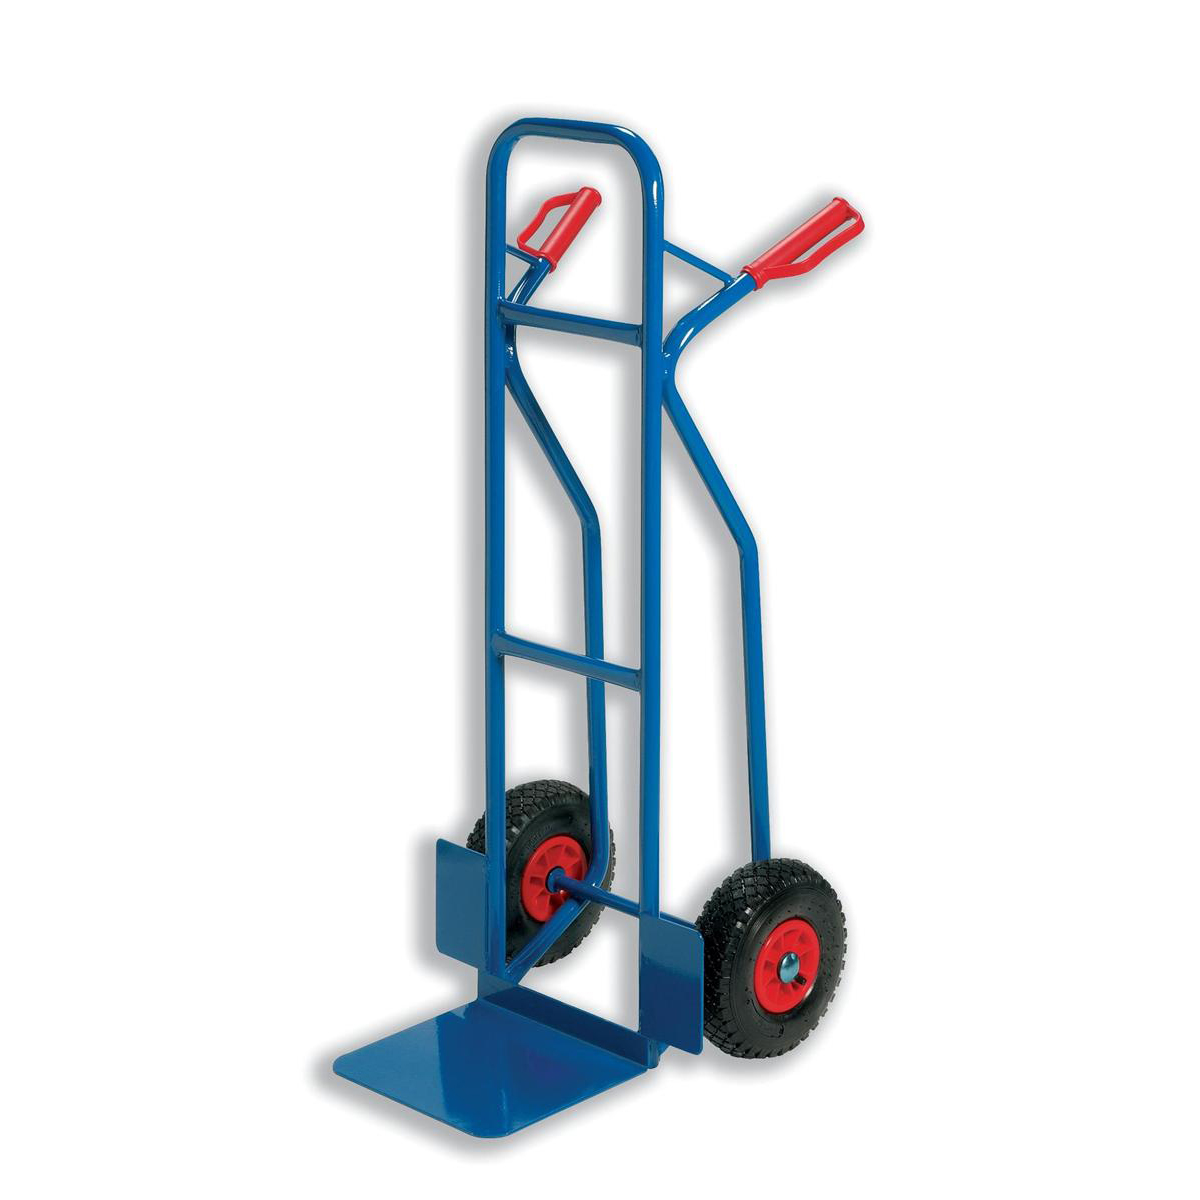 Platform truck Warehouse Hand Trolley Capacity 180kg Foot Size W495xL510mm Blue